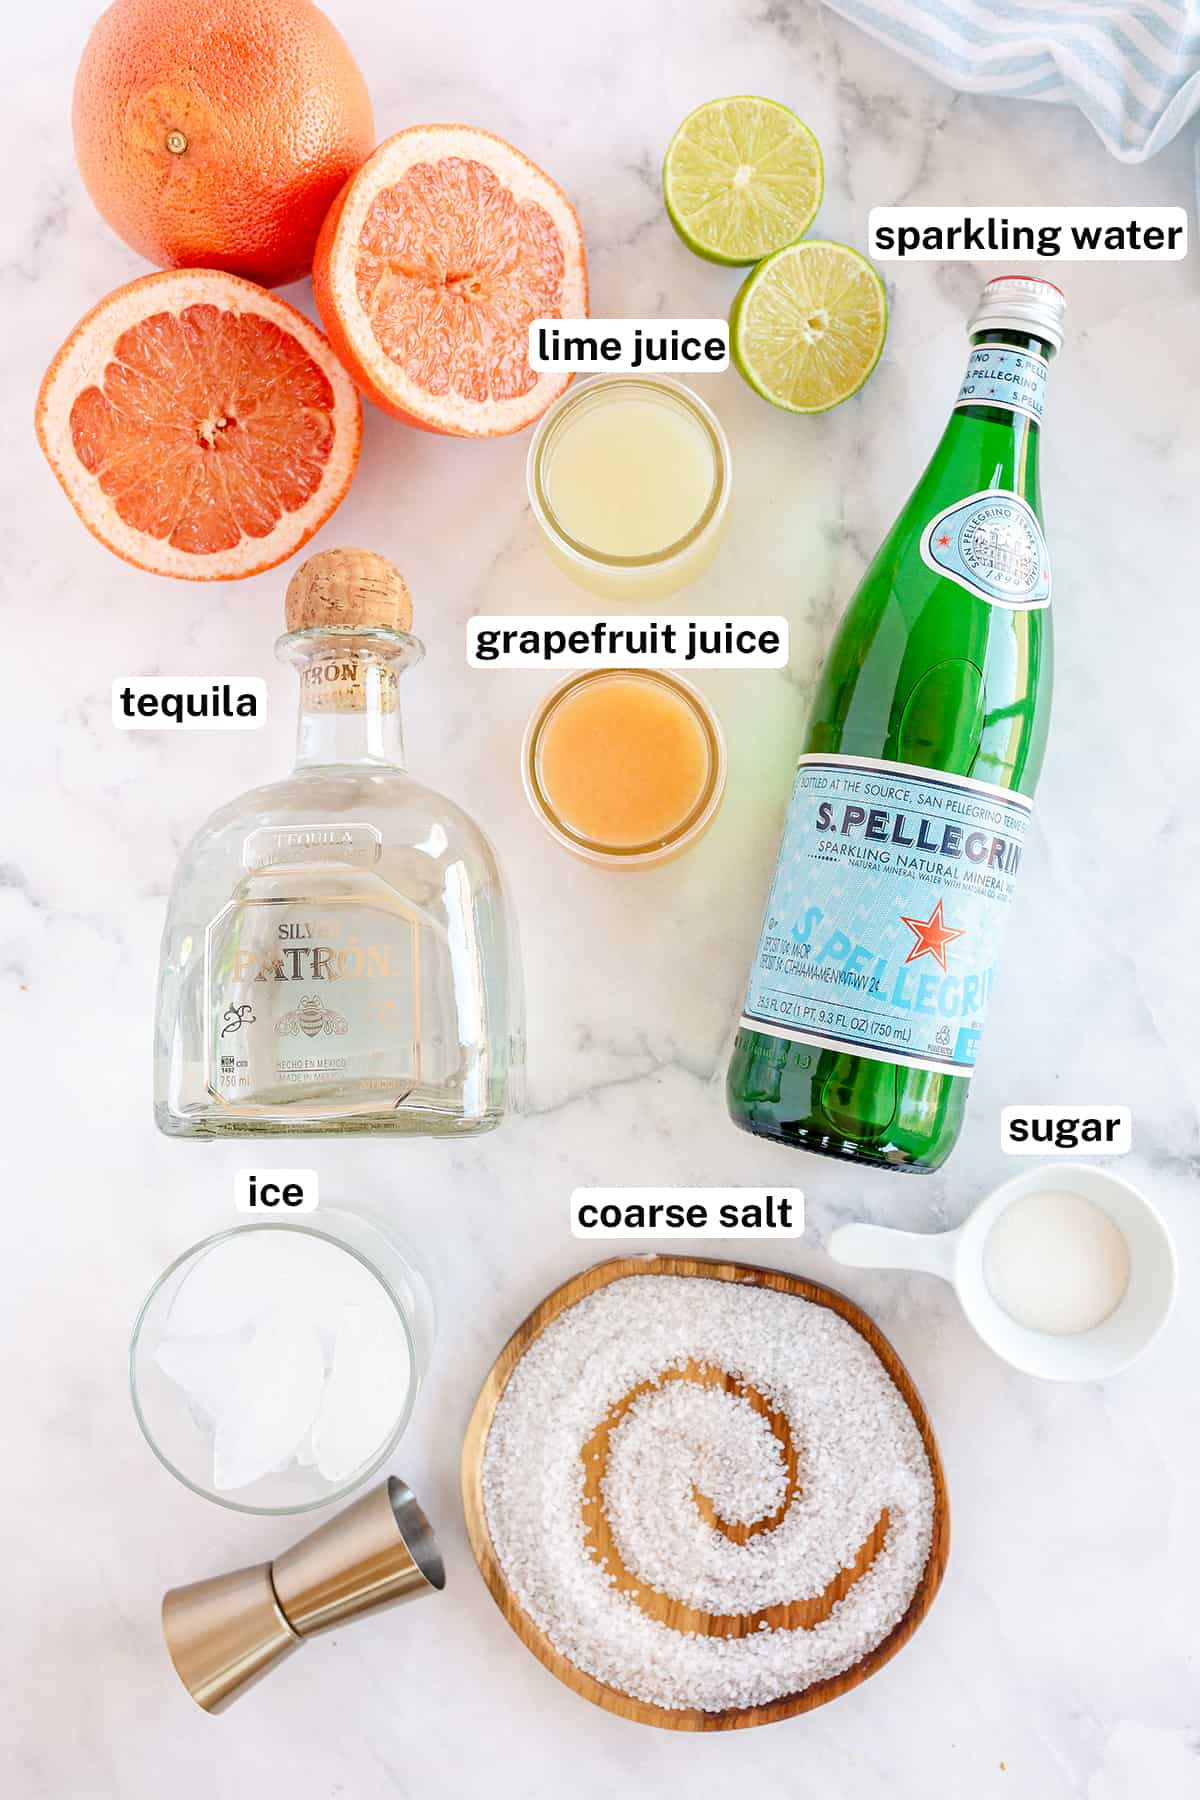 Tequila, Pellegrino and other ingredients to make a Paloma cocktail.